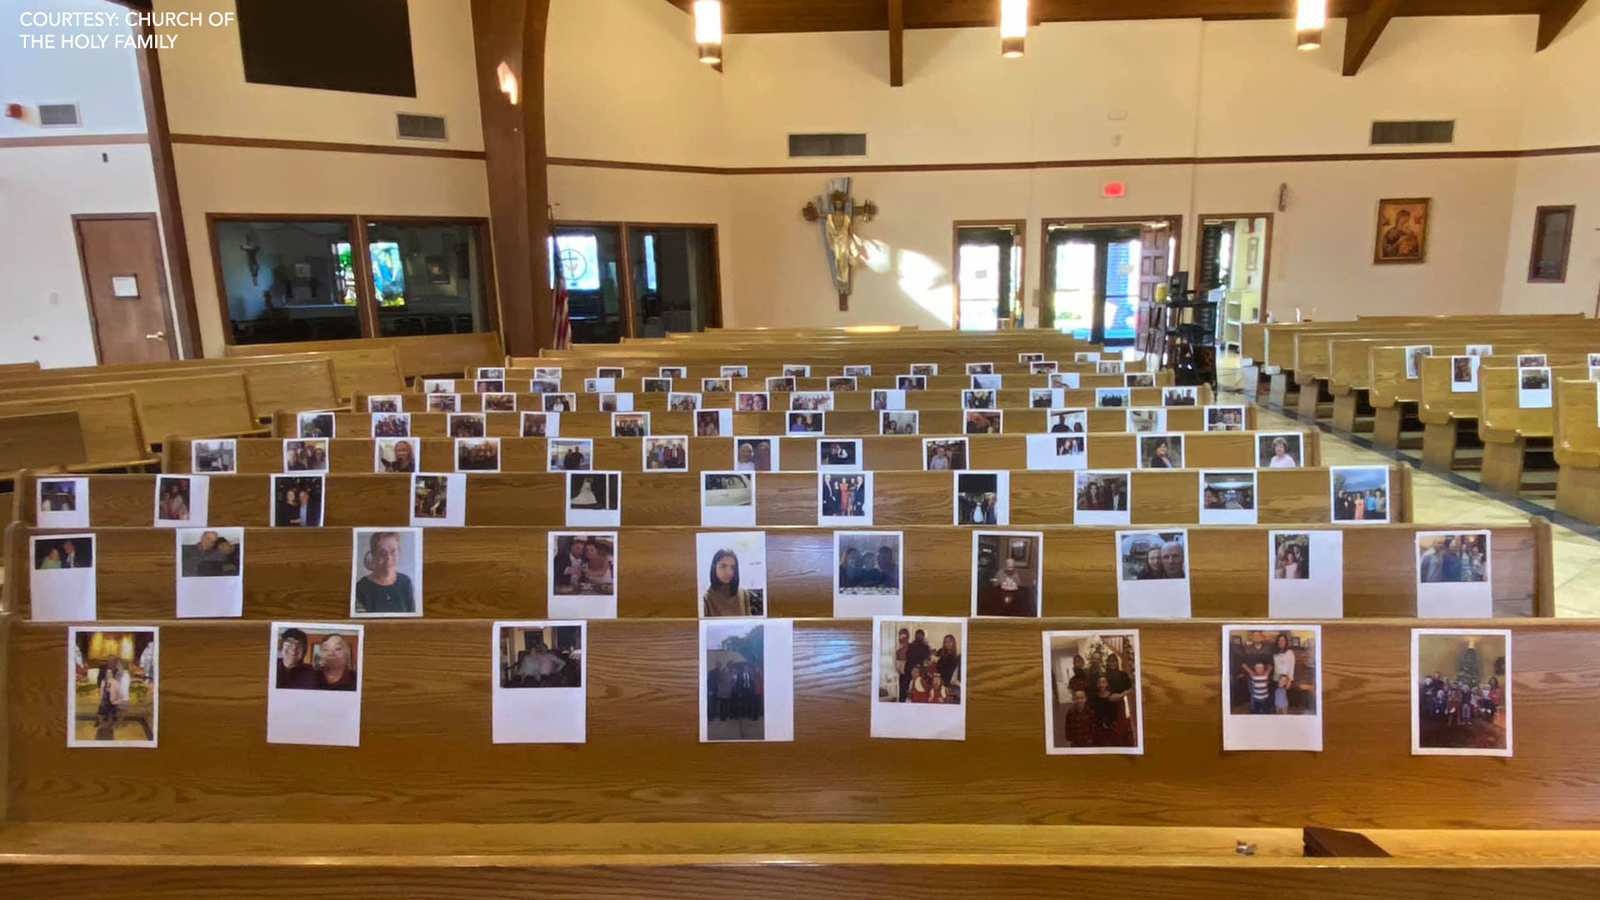 Church fills empty pews with photos of parishioners during COVID-19 crisis - 6abc Philadelphia